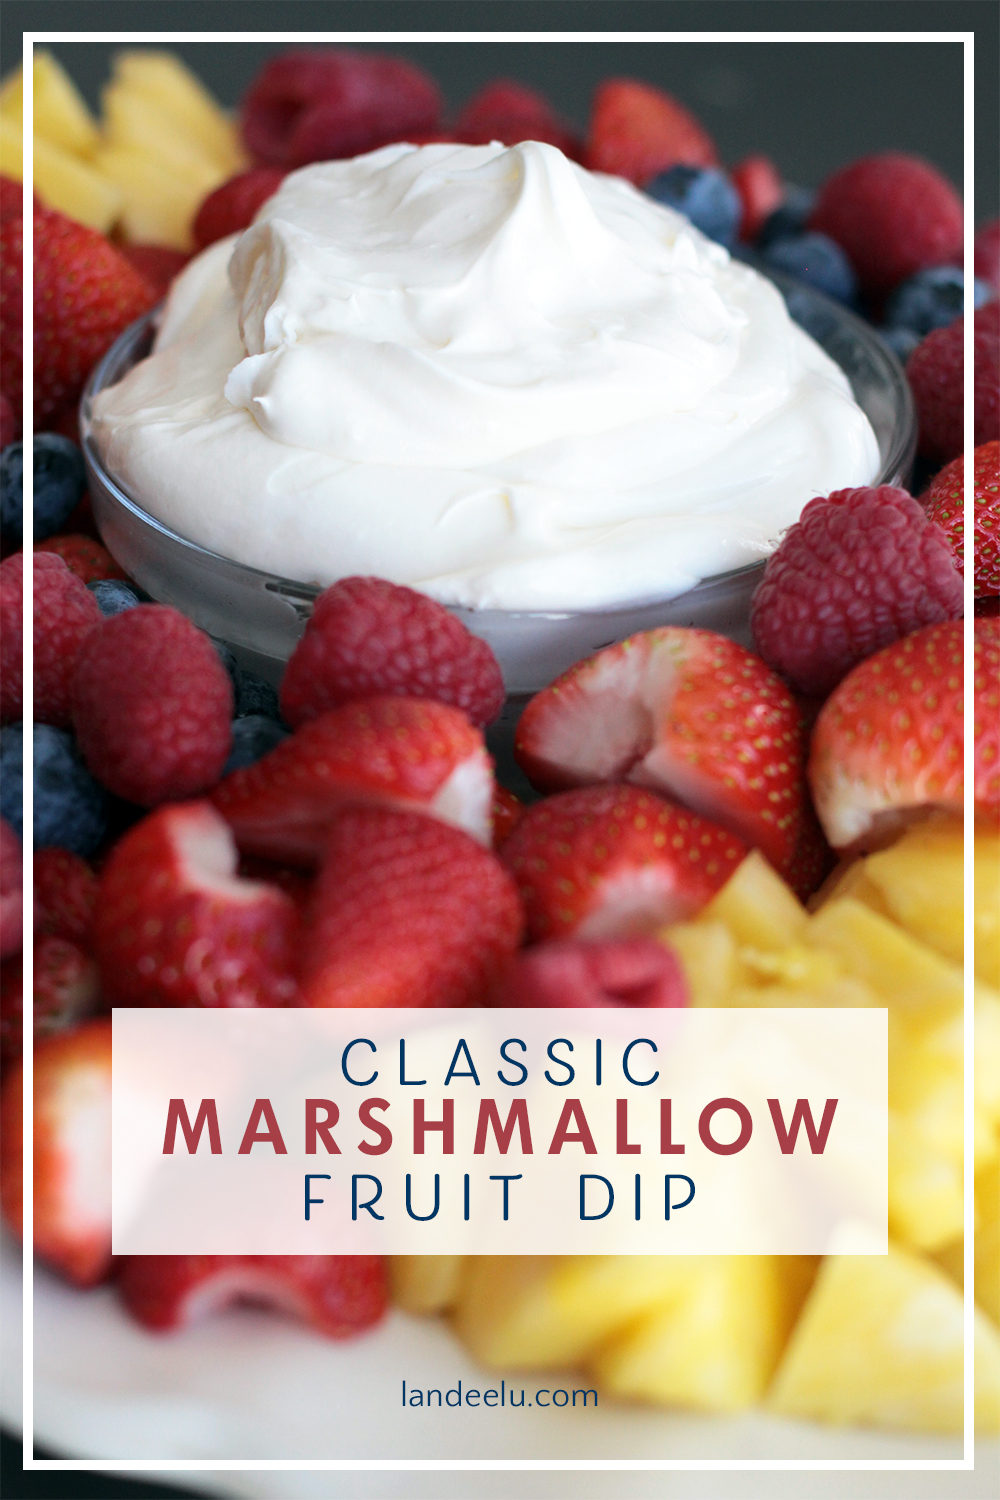 Marshmallow Fruit Dip The Perfect Marshmallow Dip Only 3 Ingredients